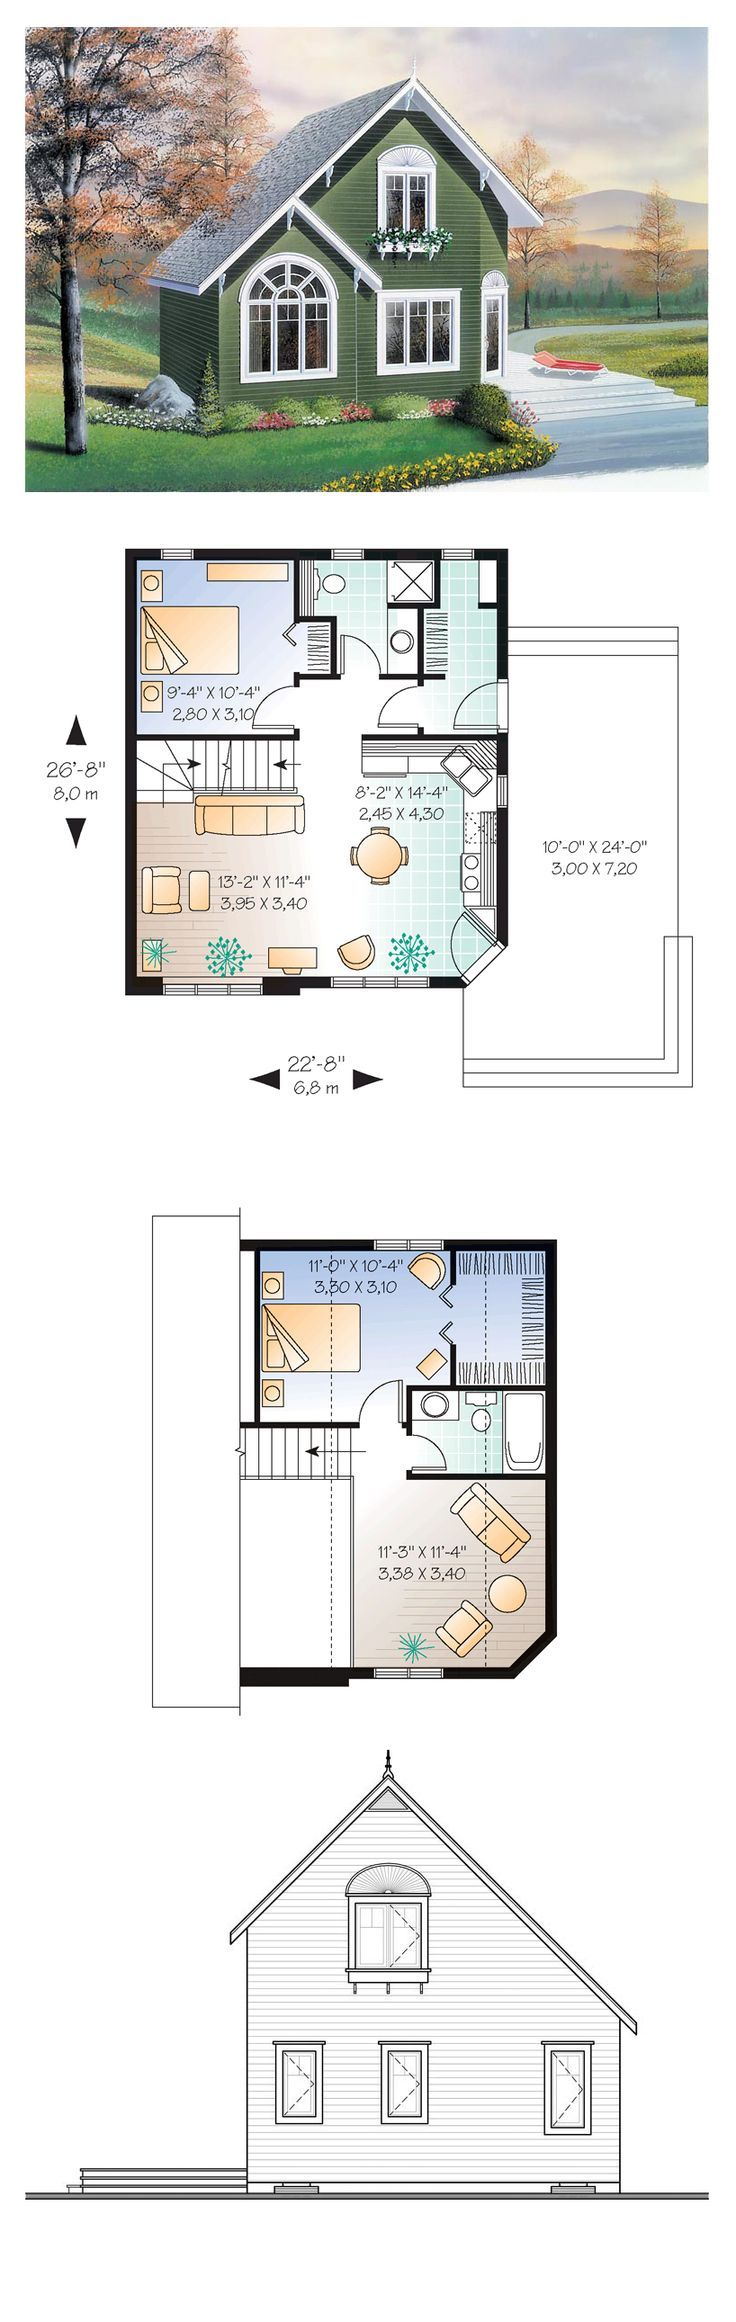 Narrow Lot House Plan 76168   Total Living Area: 991 sq. ft., 2 bedrooms and 2 bathrooms. A bedroom is located on the main level, and a cathedral ceiling over the living room expands the interior space.  #houseplan #narrowlothome